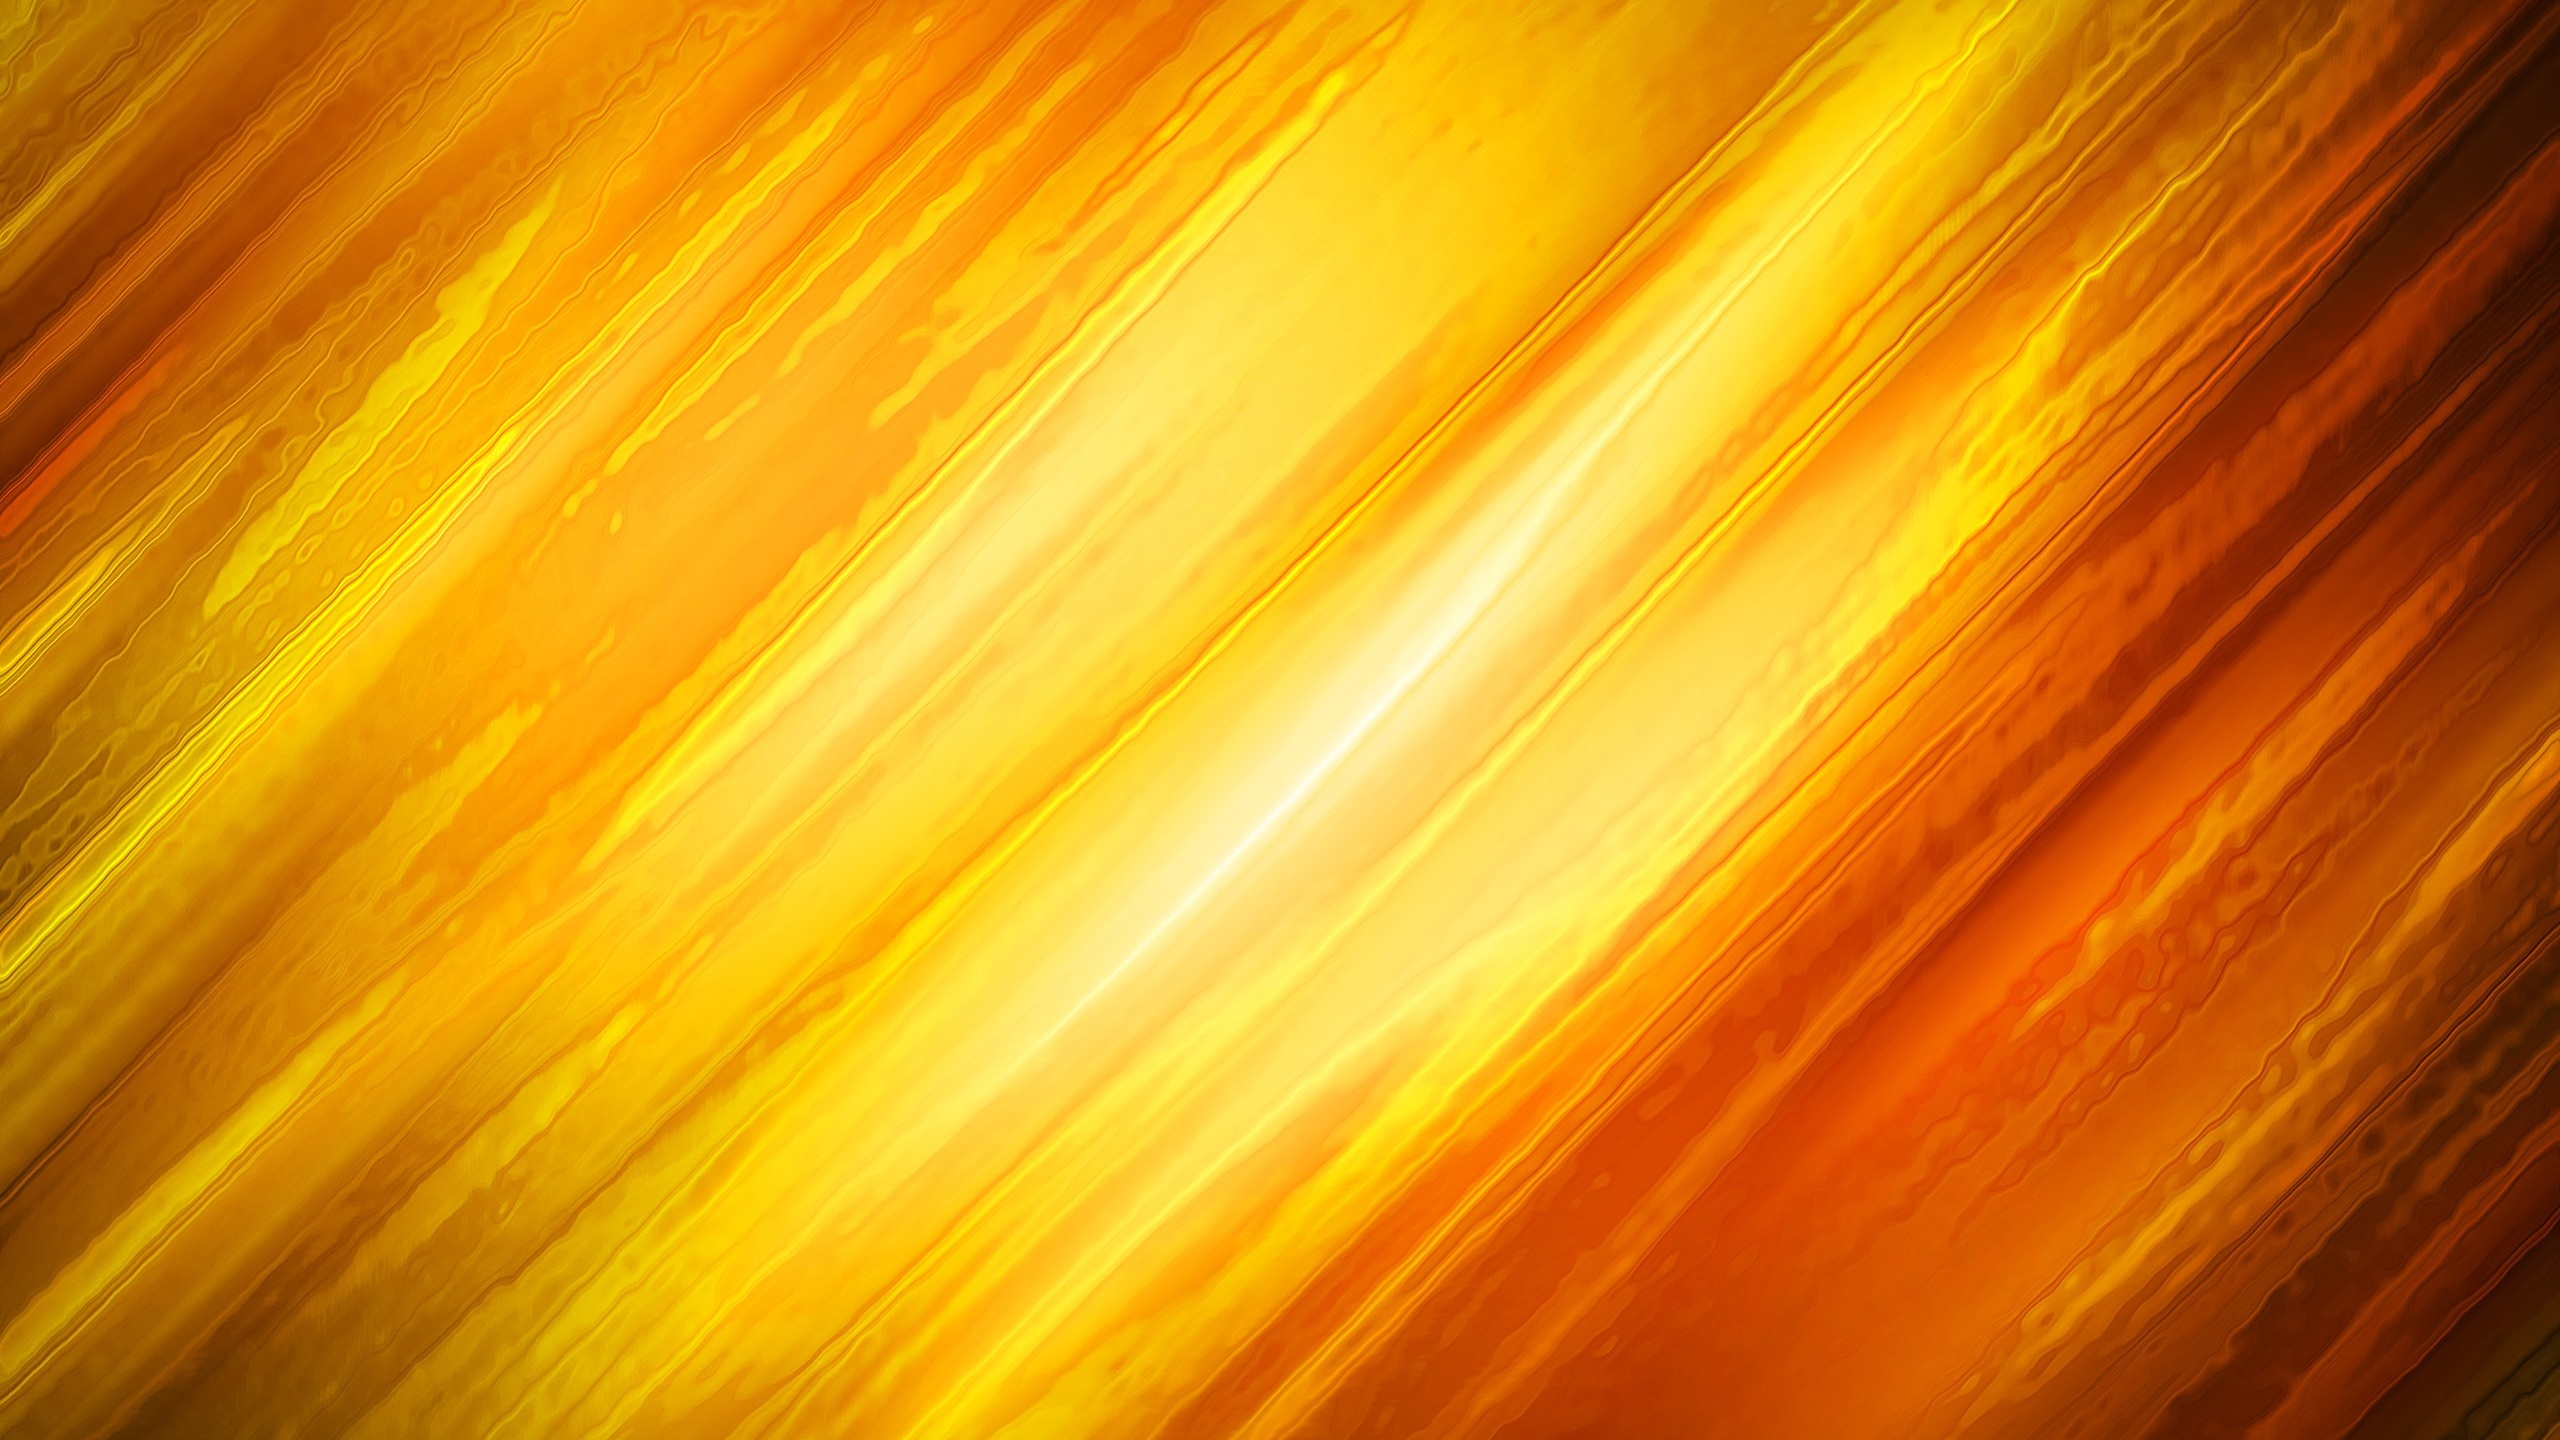 2560x1440 Abstract Yellow and Orange Background desktop PC and Mac 2560x1440